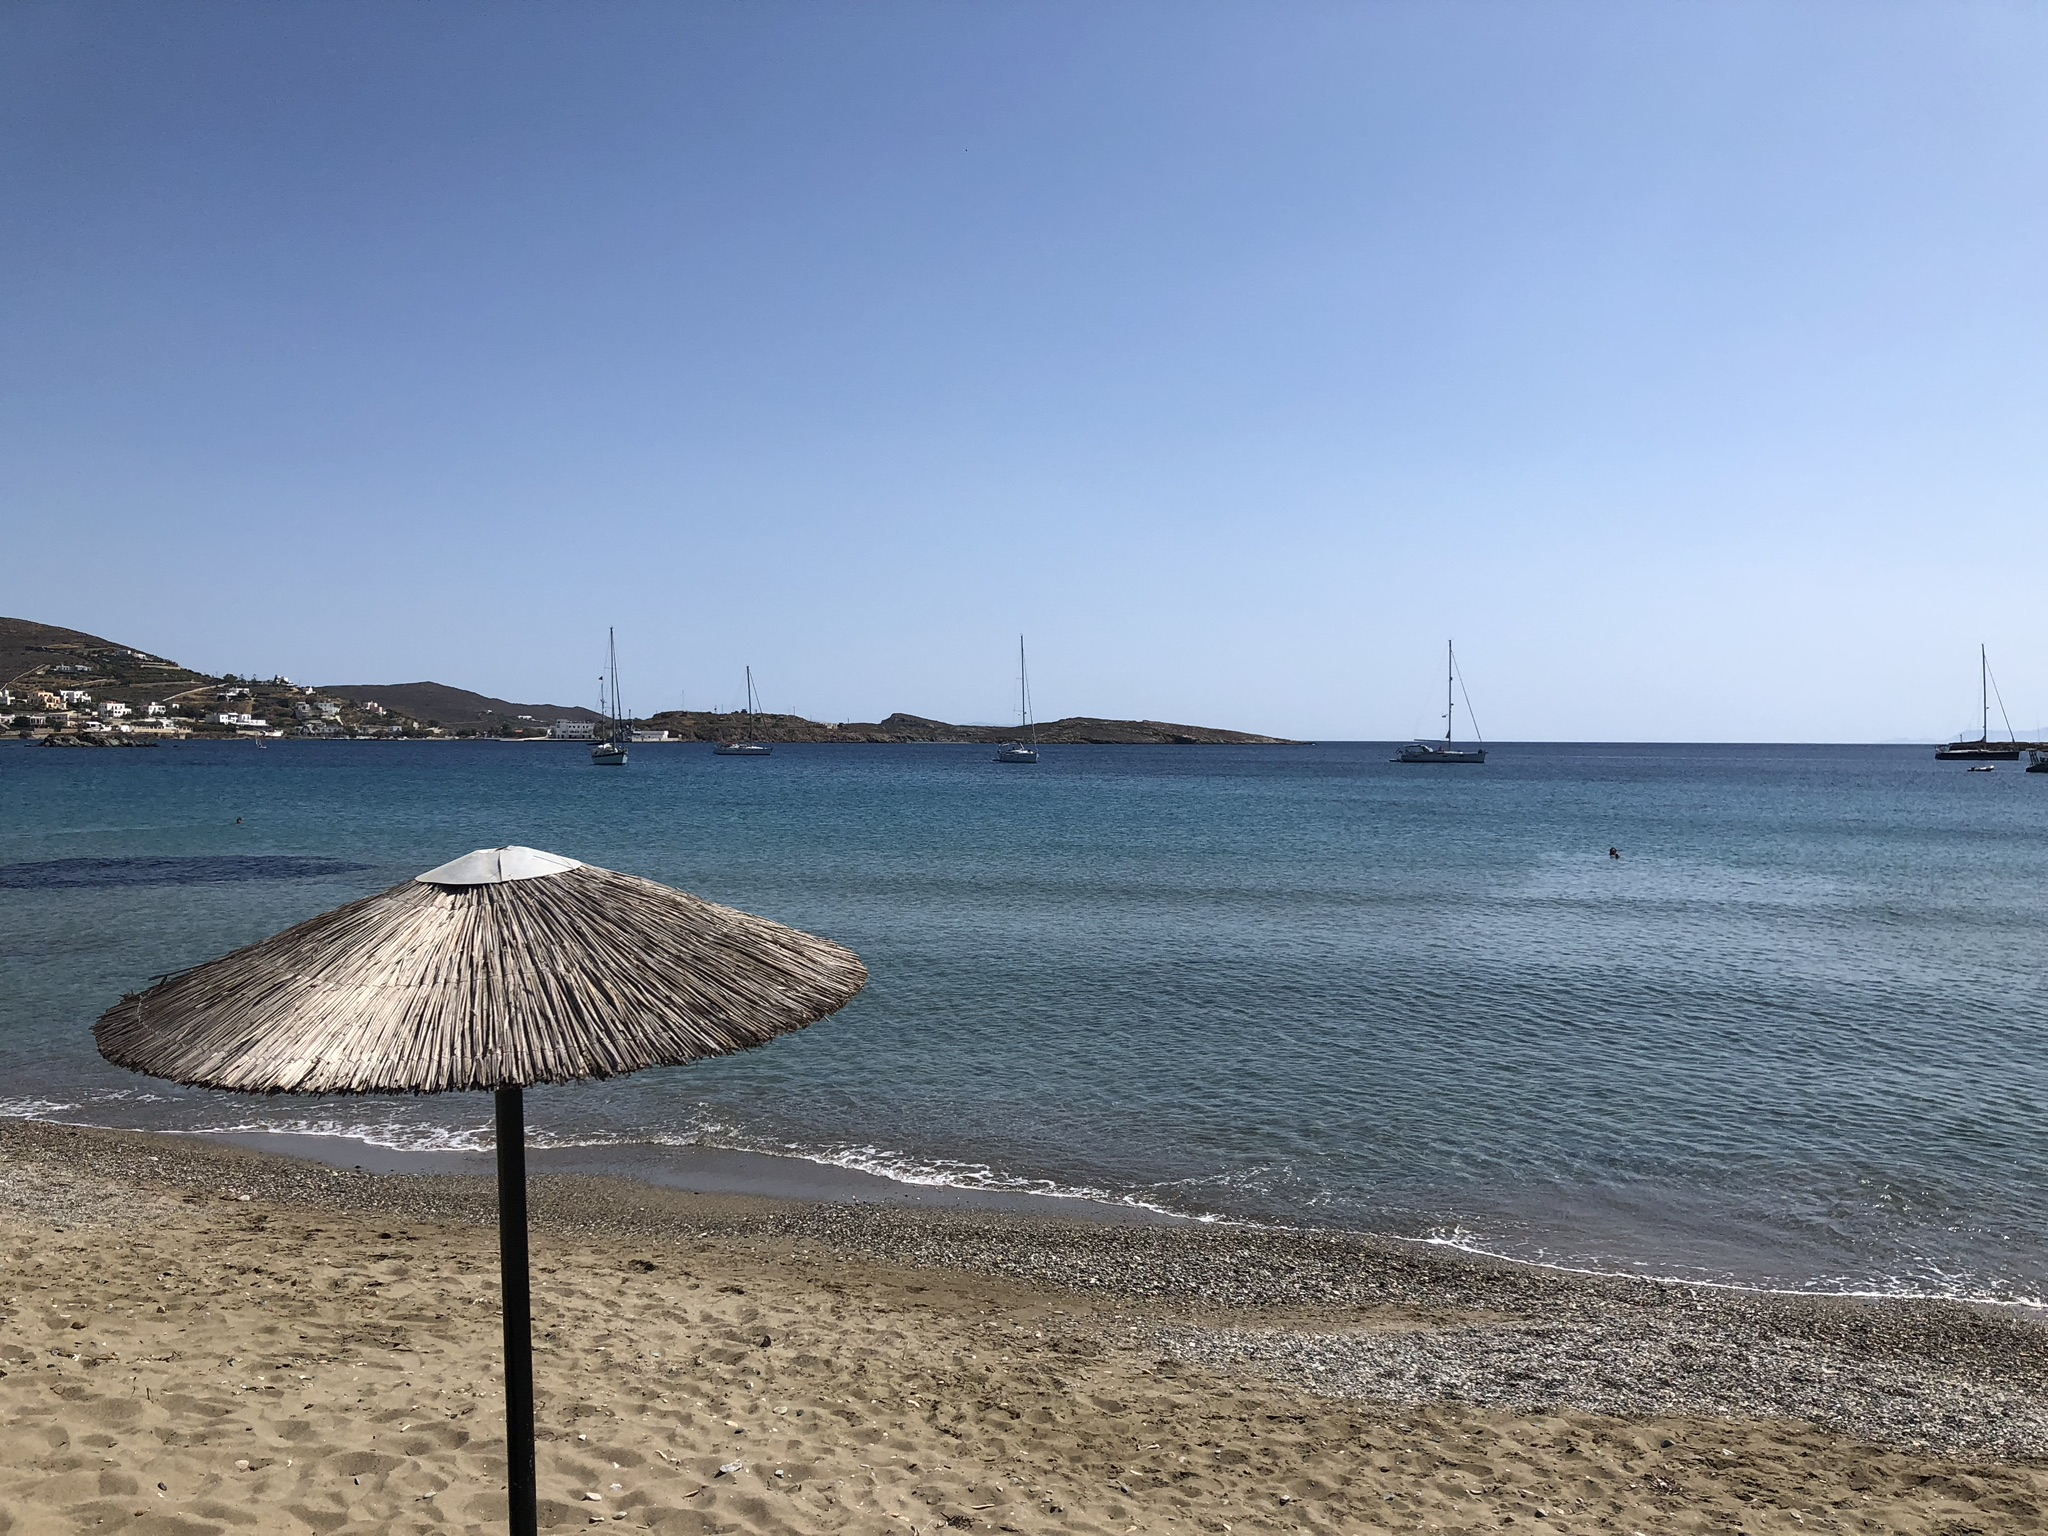 We found a spot under these fun umbrellas and relaxed on the beach in Siros.